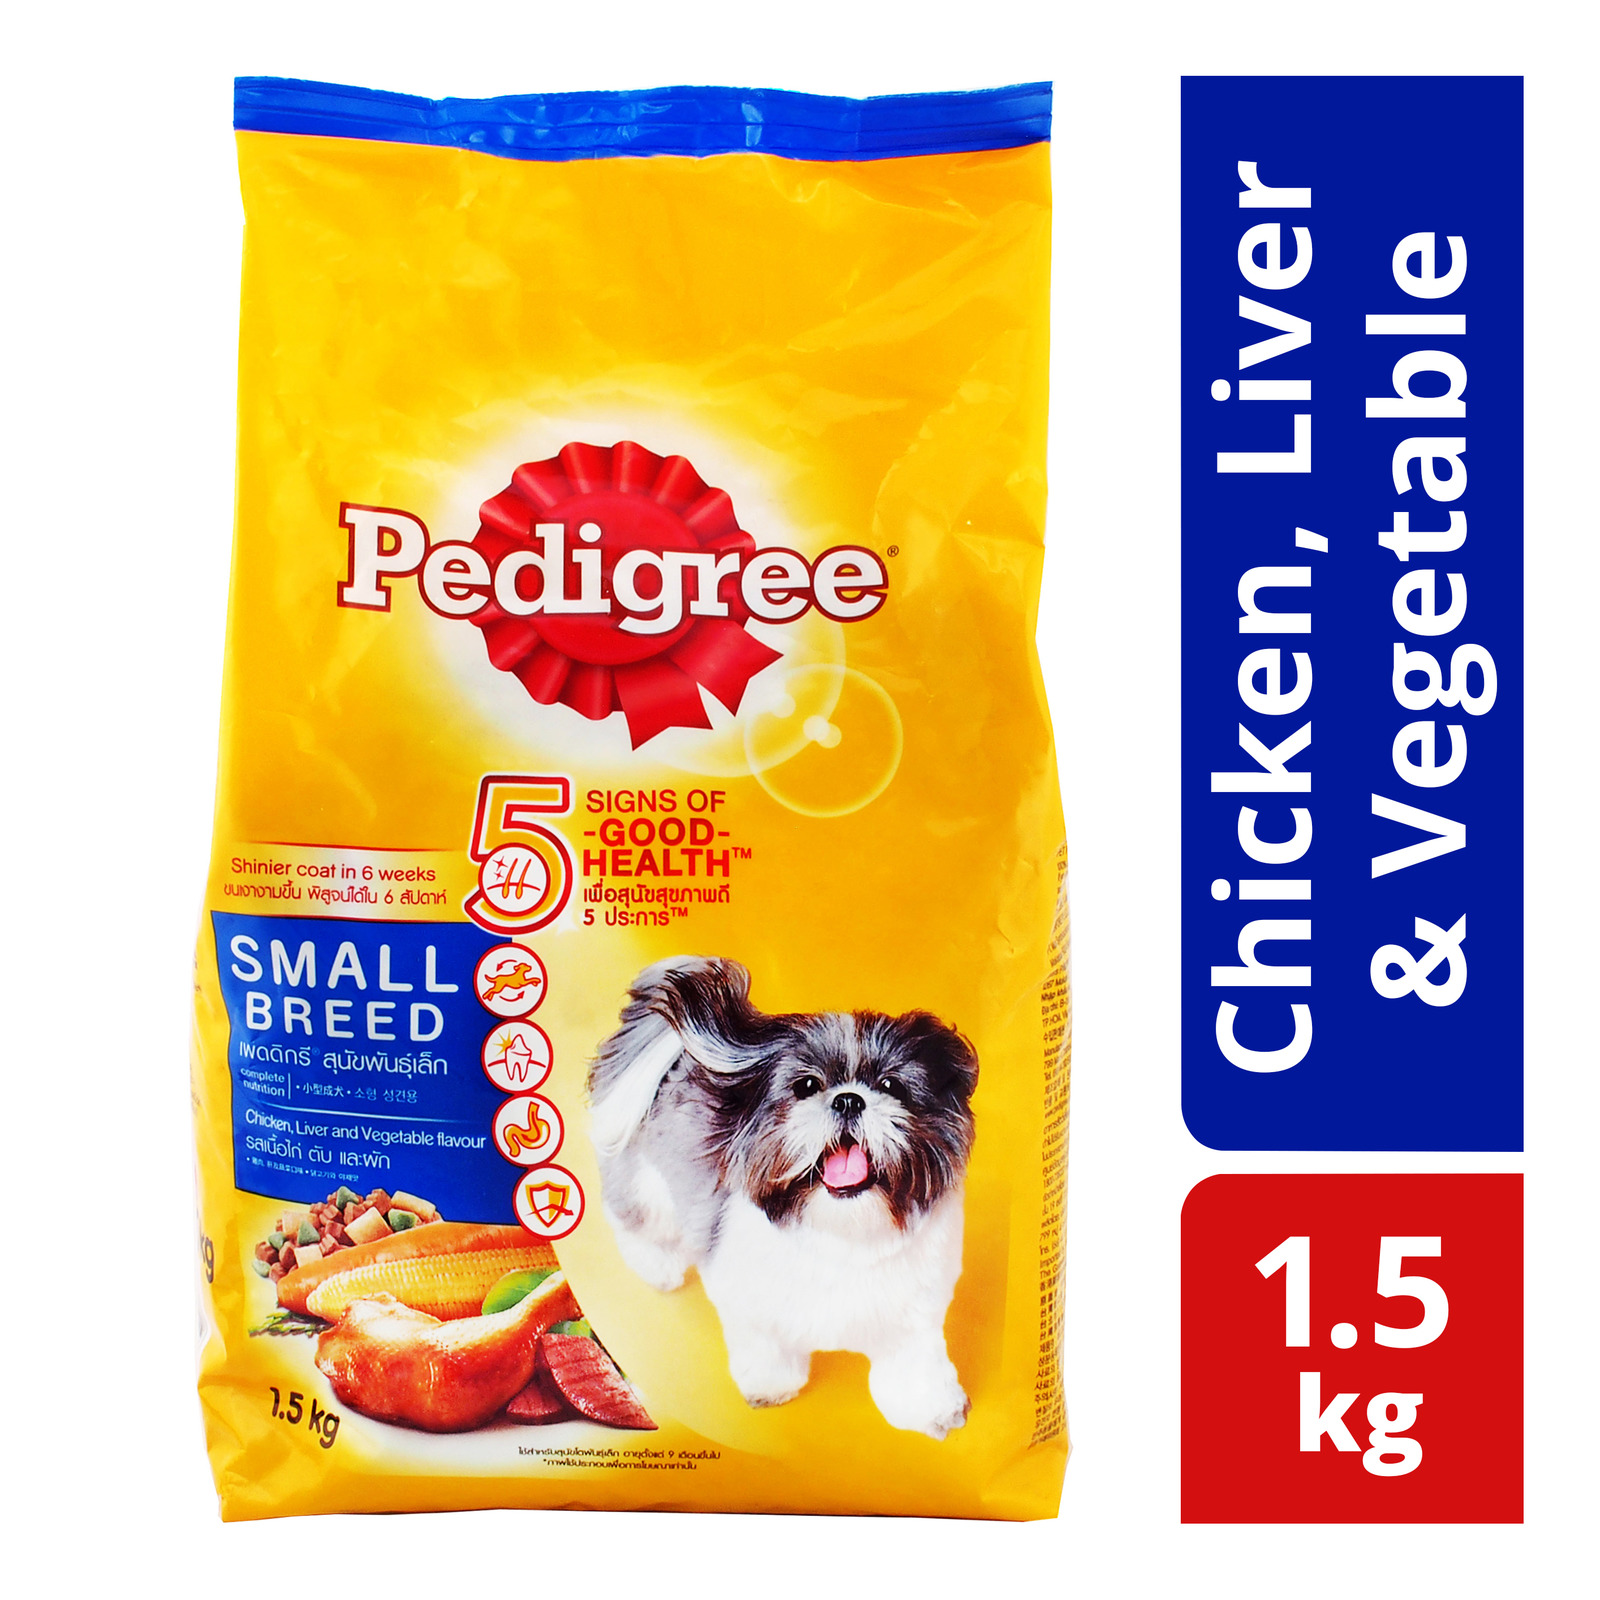 Pedigree Small Breed Dog Dry Food - Chicken, Liver & Vegetable